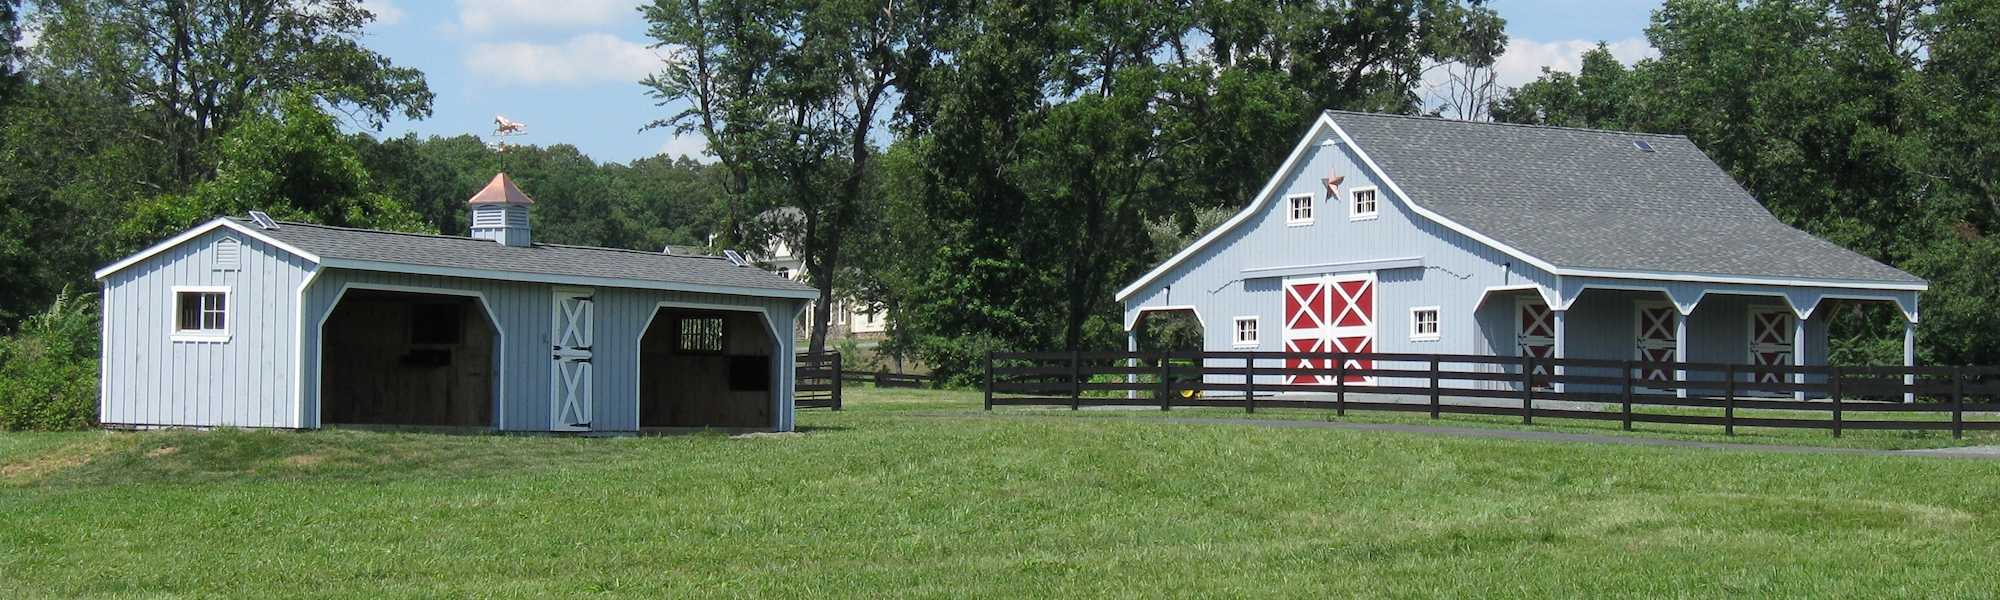 Horse Sheds and Barns